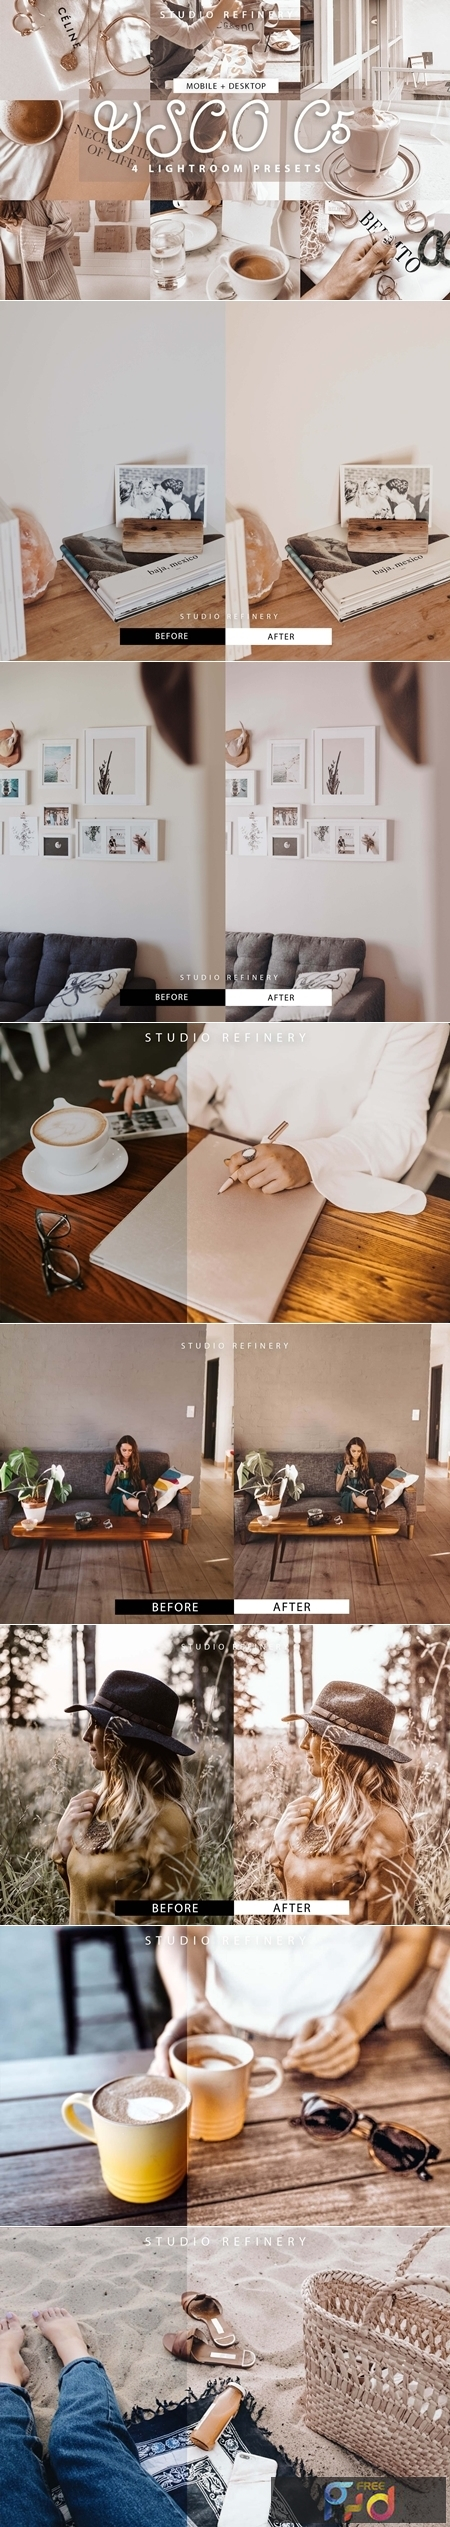 VSCO C5 Lightroom Presets 4156103 1